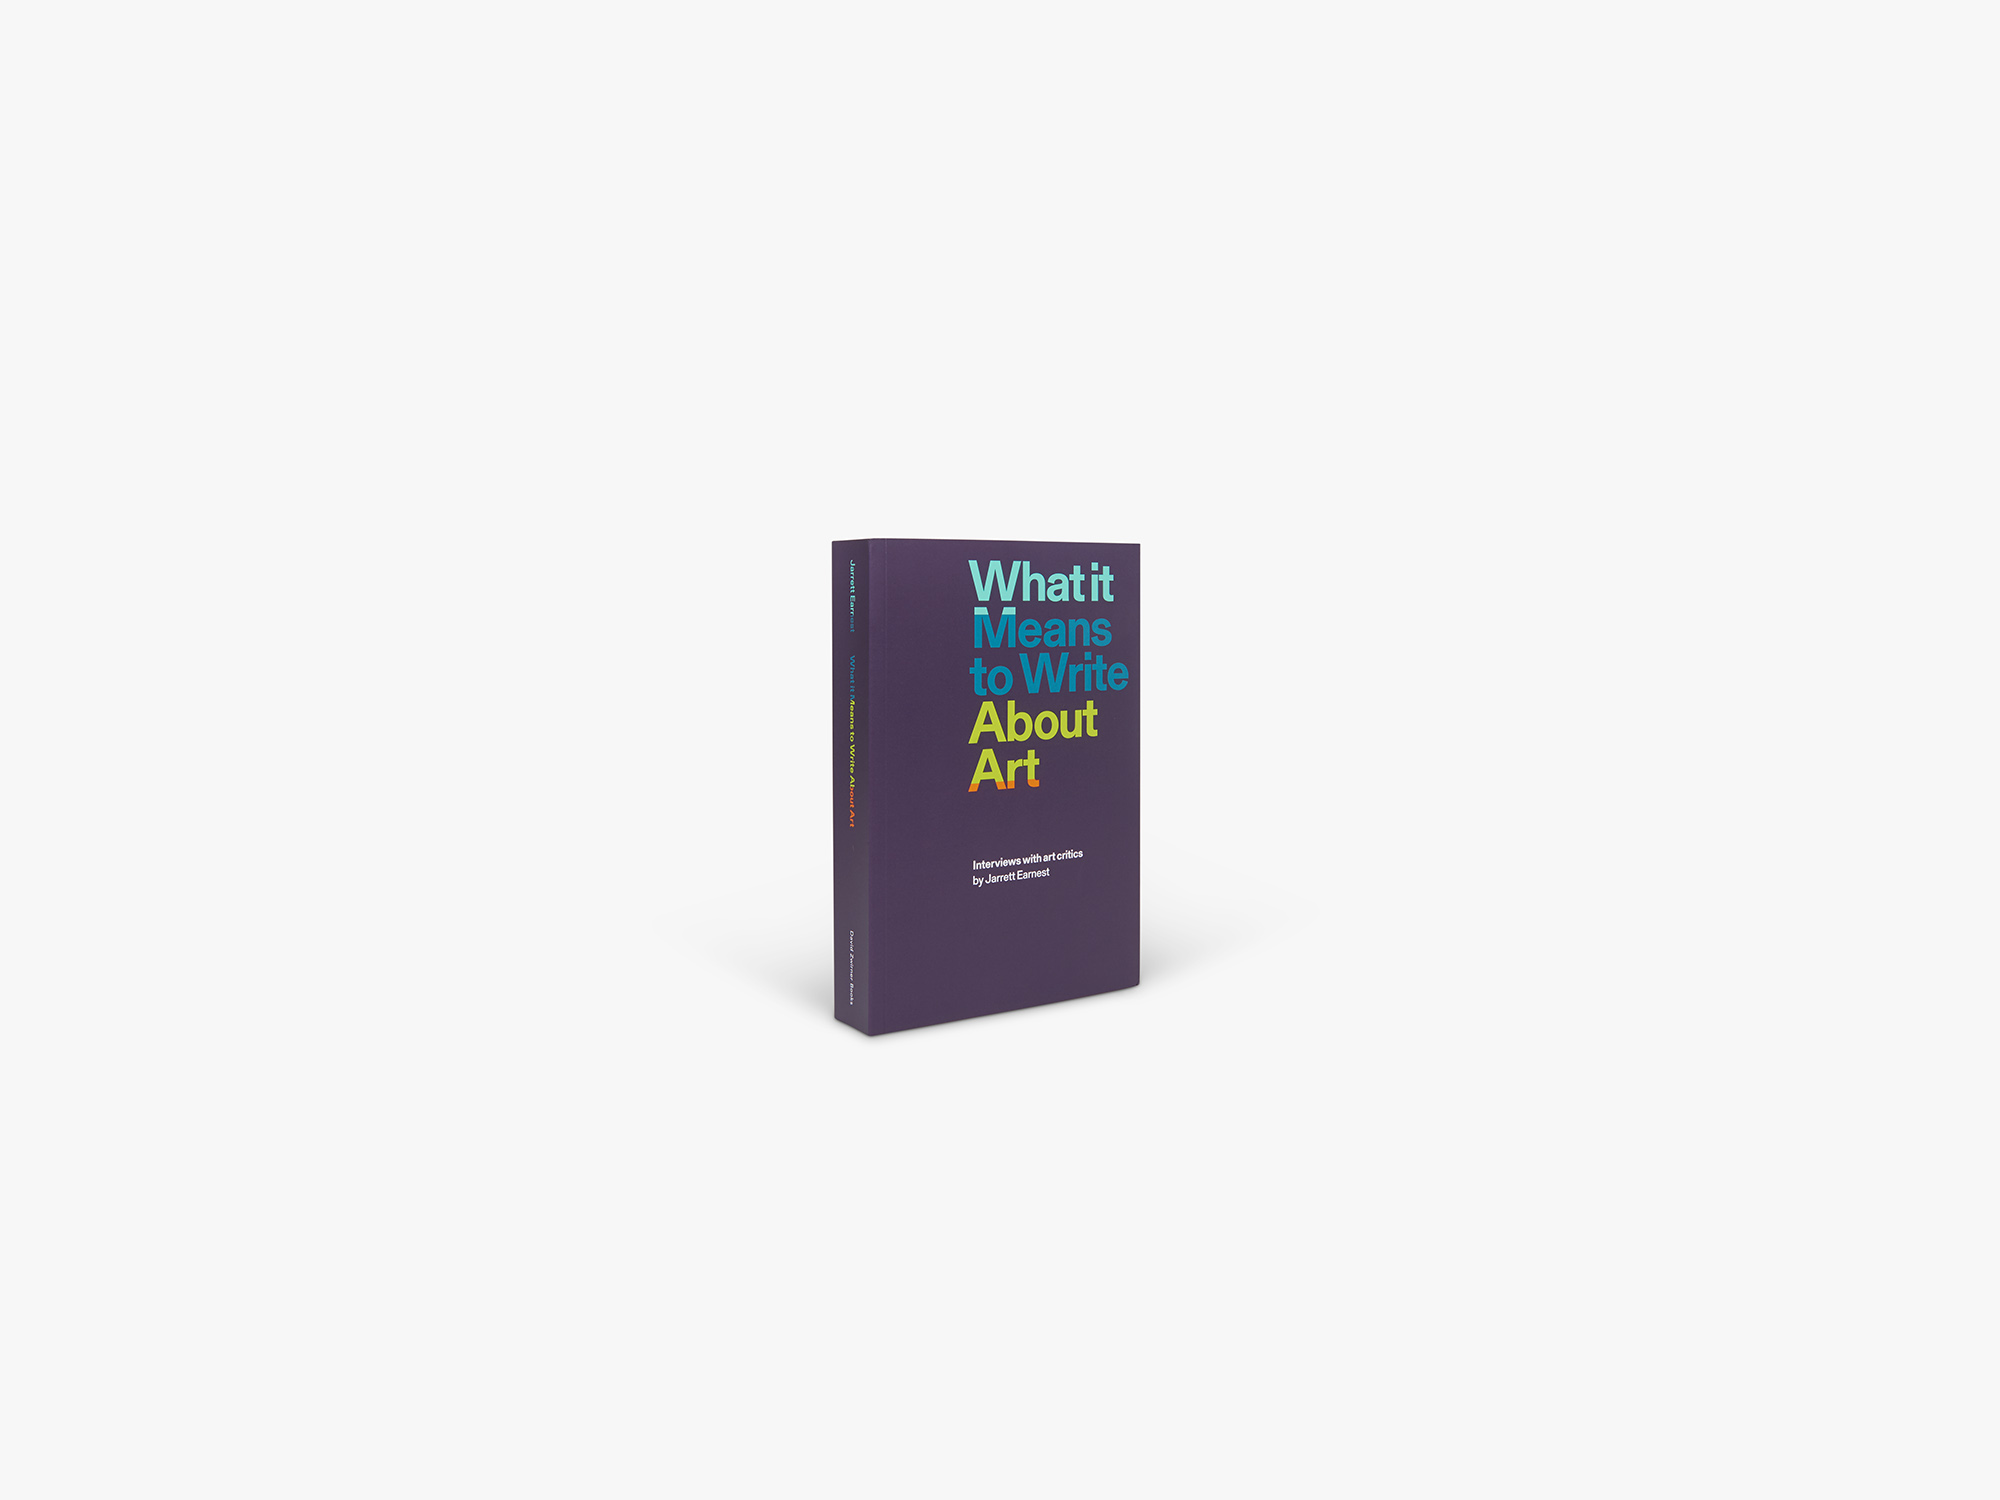 Cover of a book titled  What It Means To Write About Art: Interviews with art critics, published by David Zwirner Books in 2018.